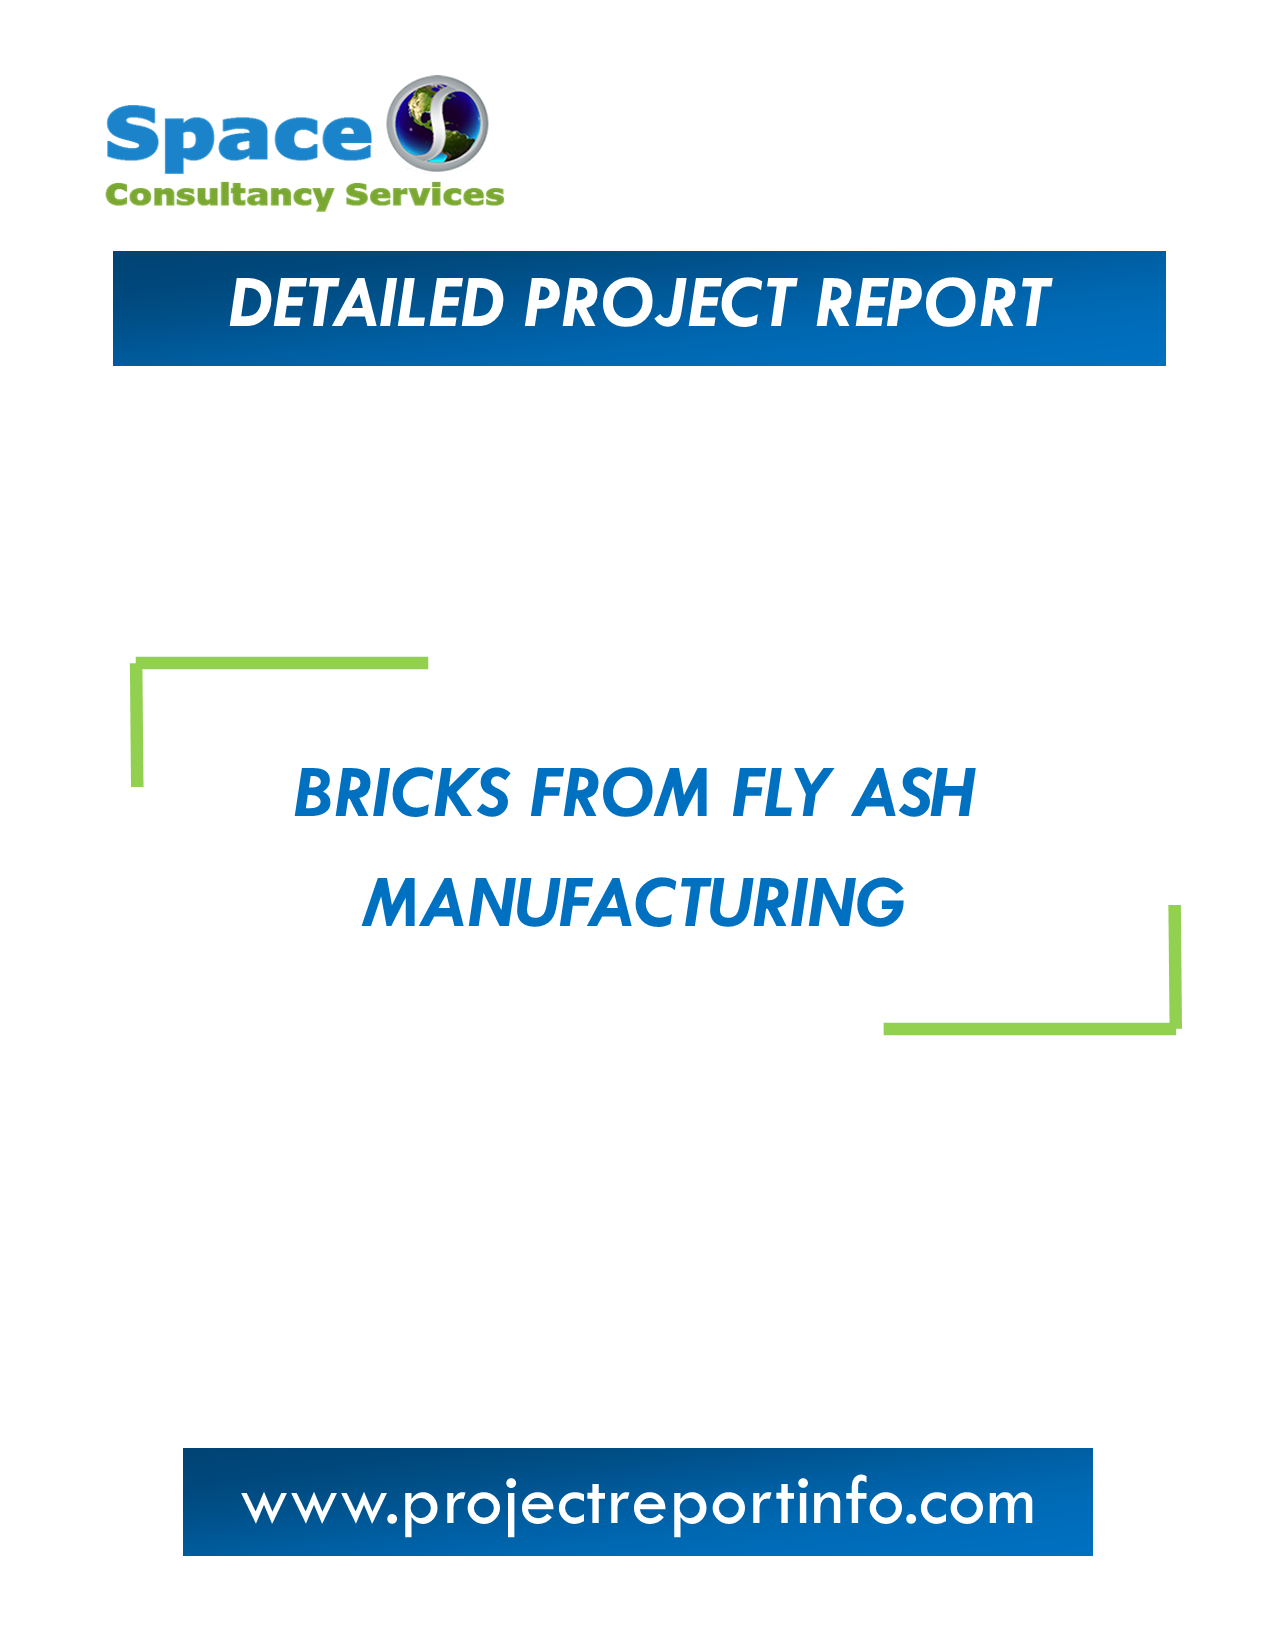 Project Report on Bricks from Fly Ash Manufacturing